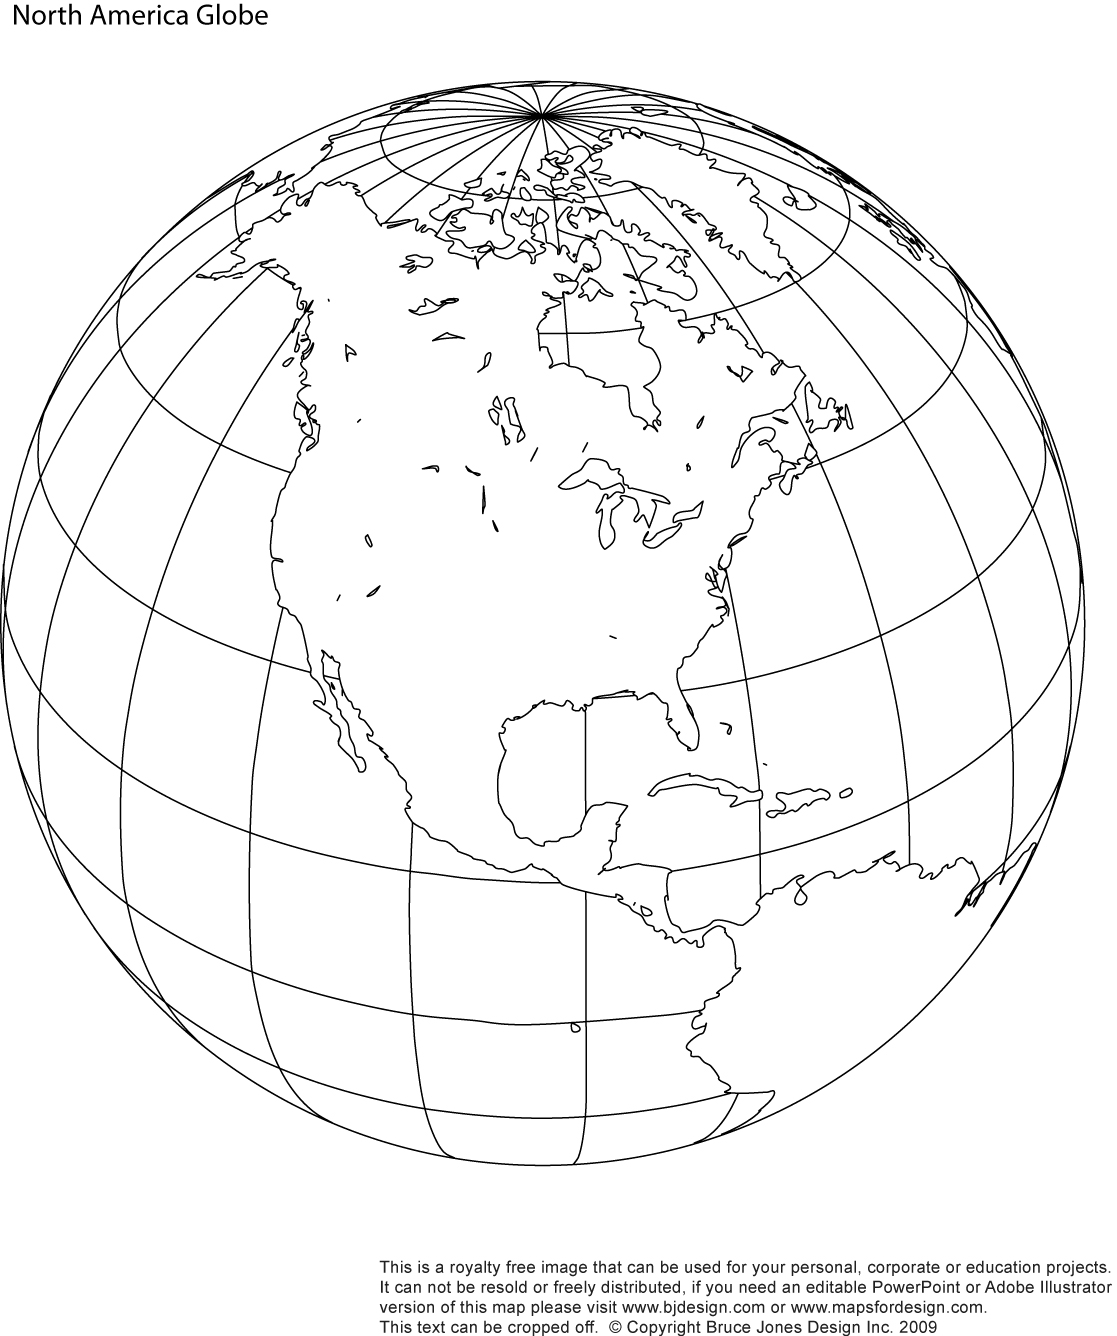 Printable Blank World Globe Earth Maps Royalty Free jpg – Globe Maps of the Earth